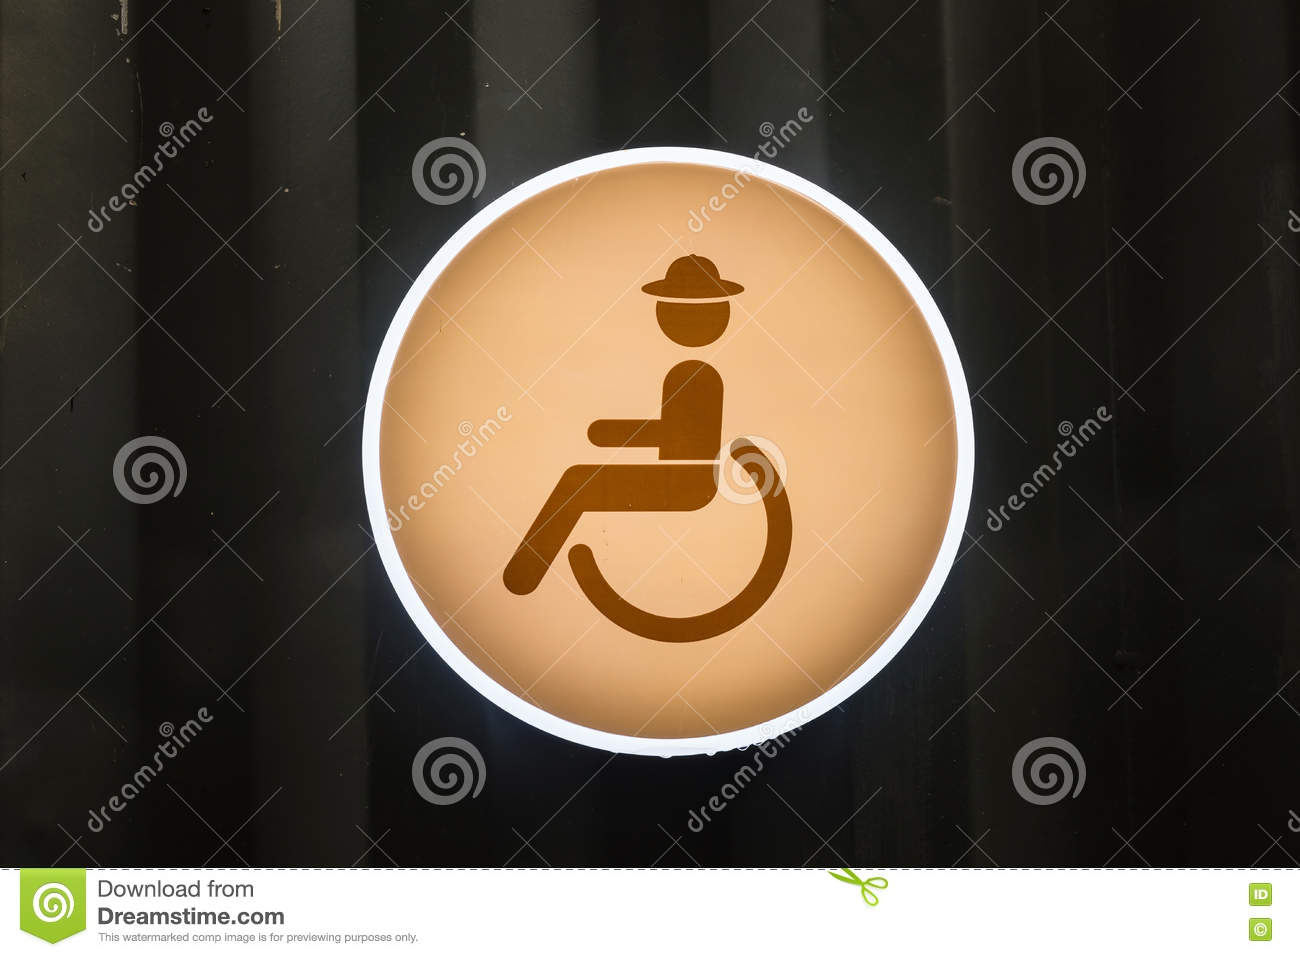 Handicap or Disabled toilet sign